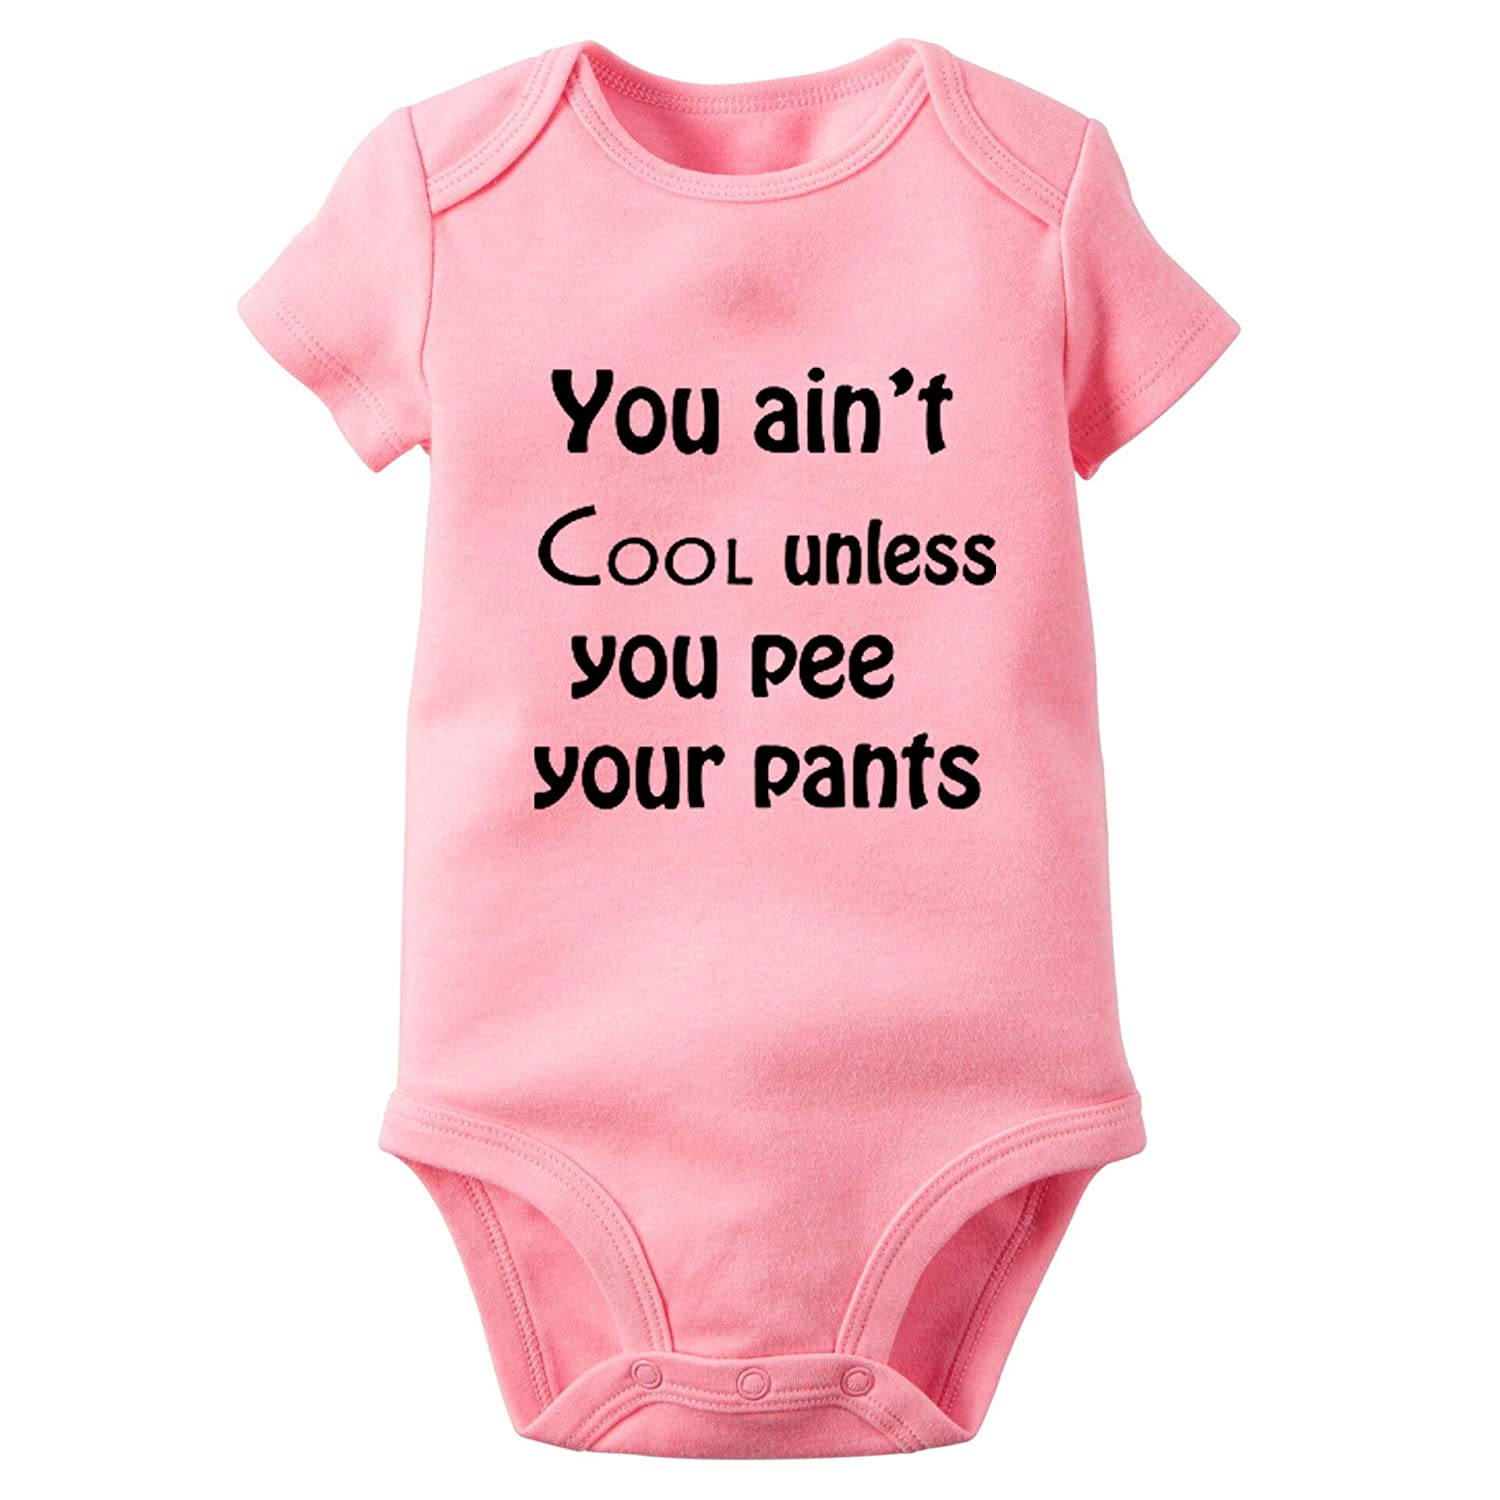 You Ain't Cool Funny Baby Bodysuit Newborn Onesies Super Soft Cotton Comfy Toddler Clothes(6m Pink dad19)